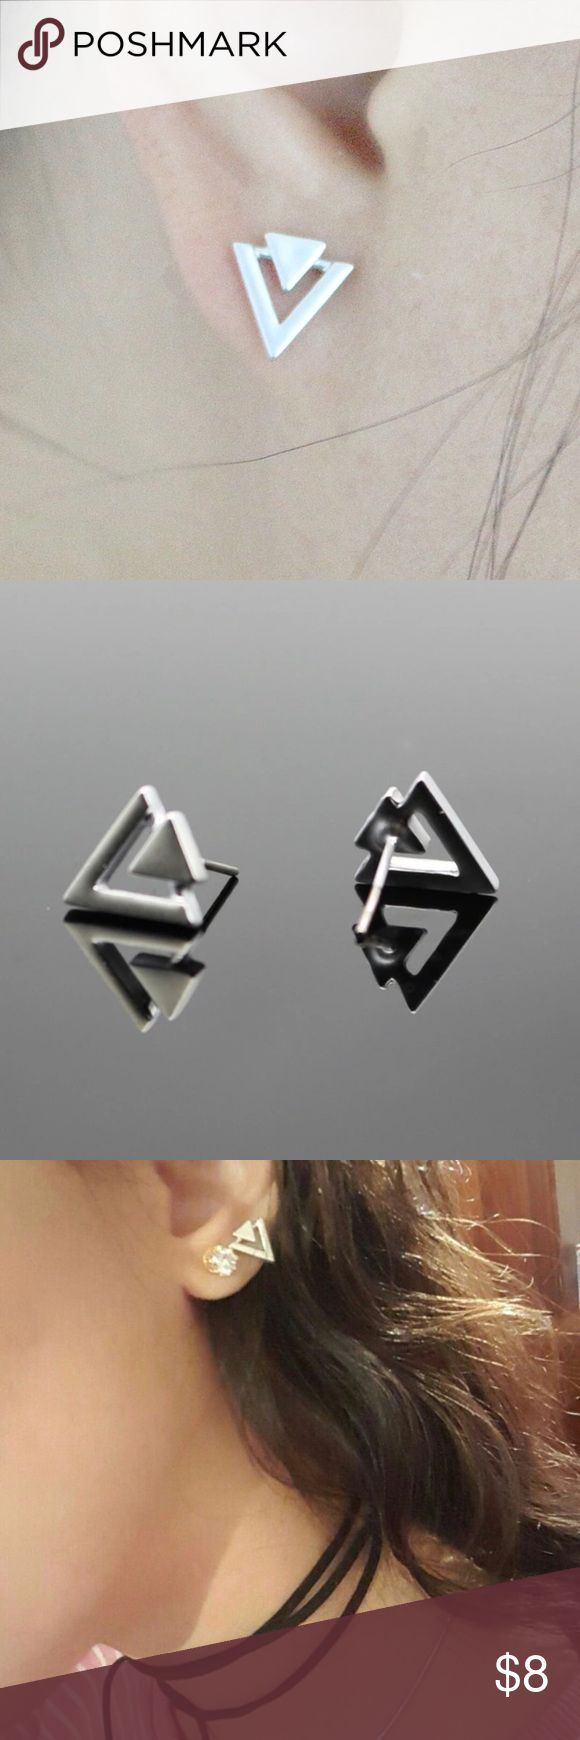 💎RESTOCK💎 Silver Triangle Minimal Stud Earrings 🔻RE-STOCKED🔻  BRAND NEW  All items arrive adorably gift wrapped. 🎁  Simply bundle your items & save 💲💲💲  WHILE SUPPLIES LAST  Thanks for your support & enjoy! 💕  TAGS ONLY: NOT: Nasty Gal Victoria's Secret Ulta Sephora MAC H&M Lululemon kate spade J. Crew Kardashian Free People Juicy Stella & Dot Smashbox Urban Outfitters follow game Kylie classy trending cheap deal sale stylish hot trend high fashion dainty Nasty Gal Jewelry Earrings